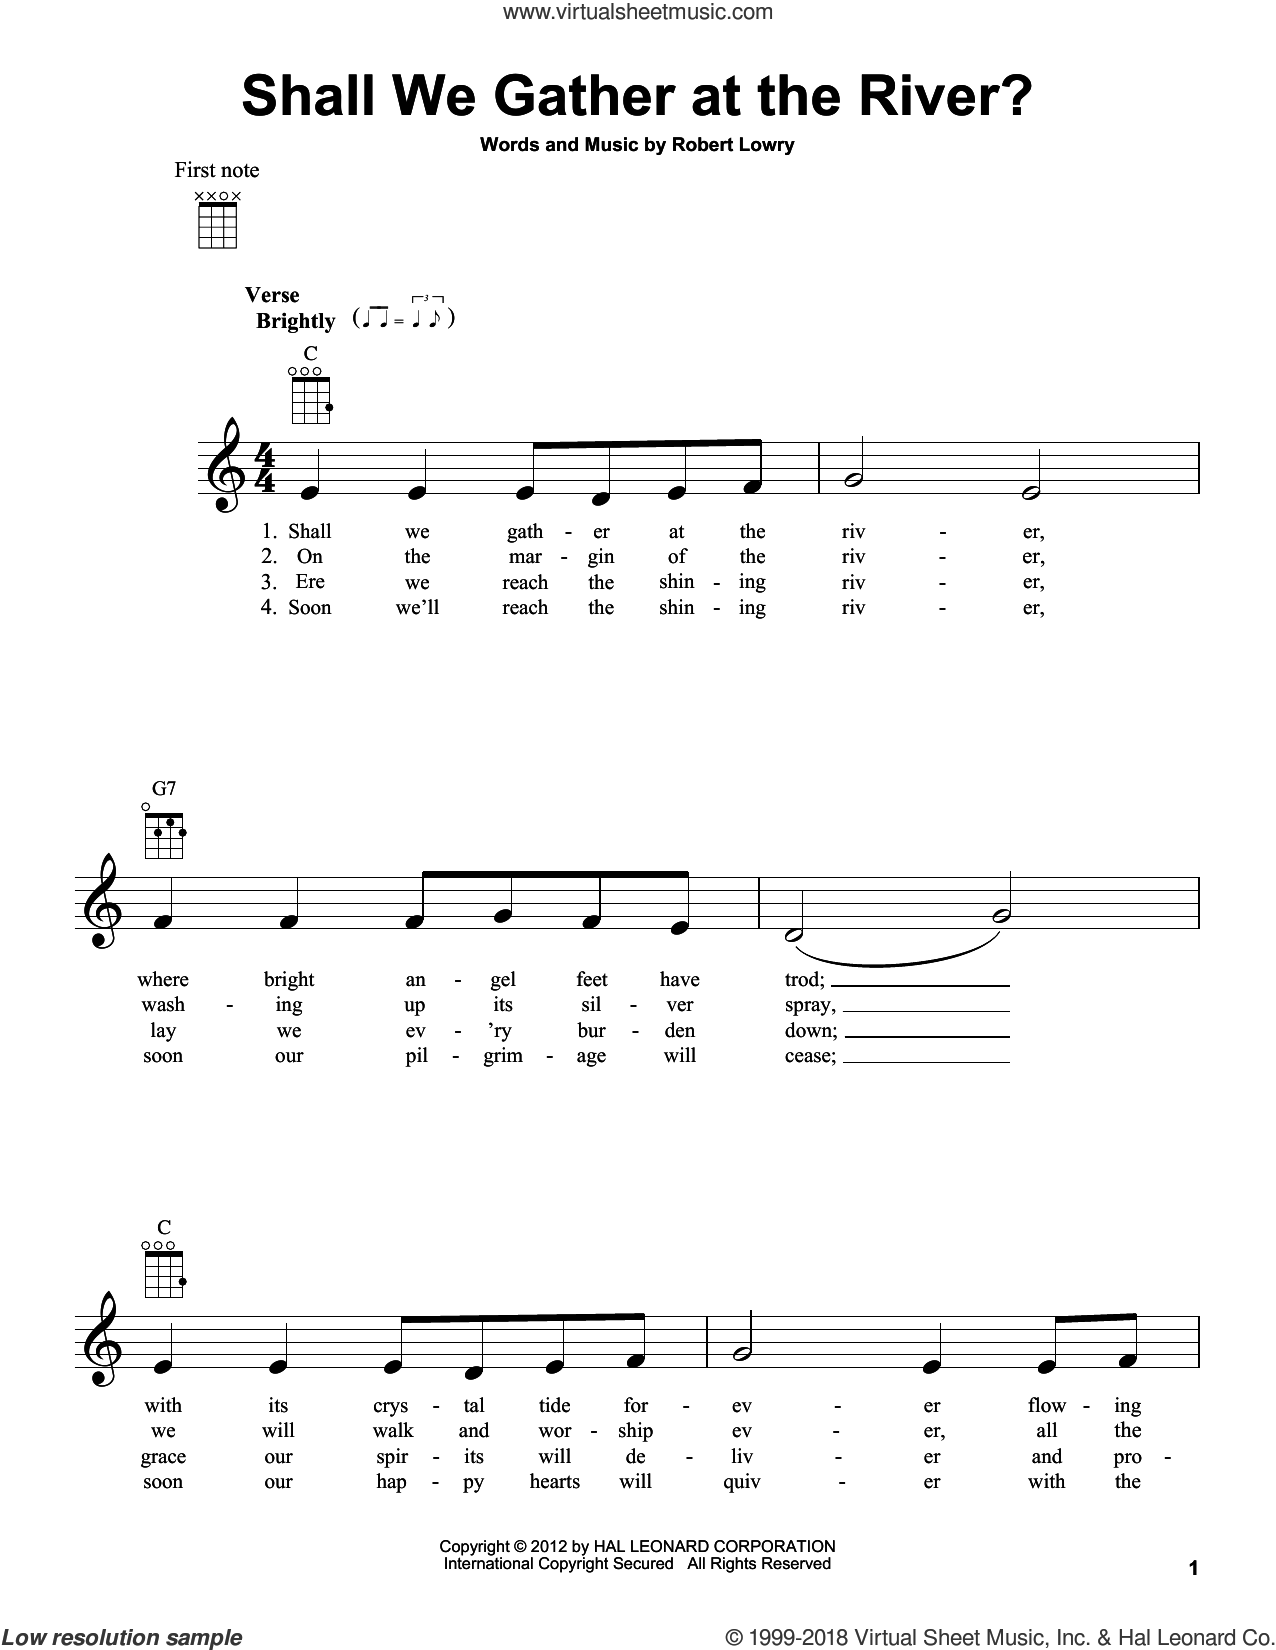 Shall We Gather At The River? sheet music for ukulele by Robert Lowry, intermediate skill level